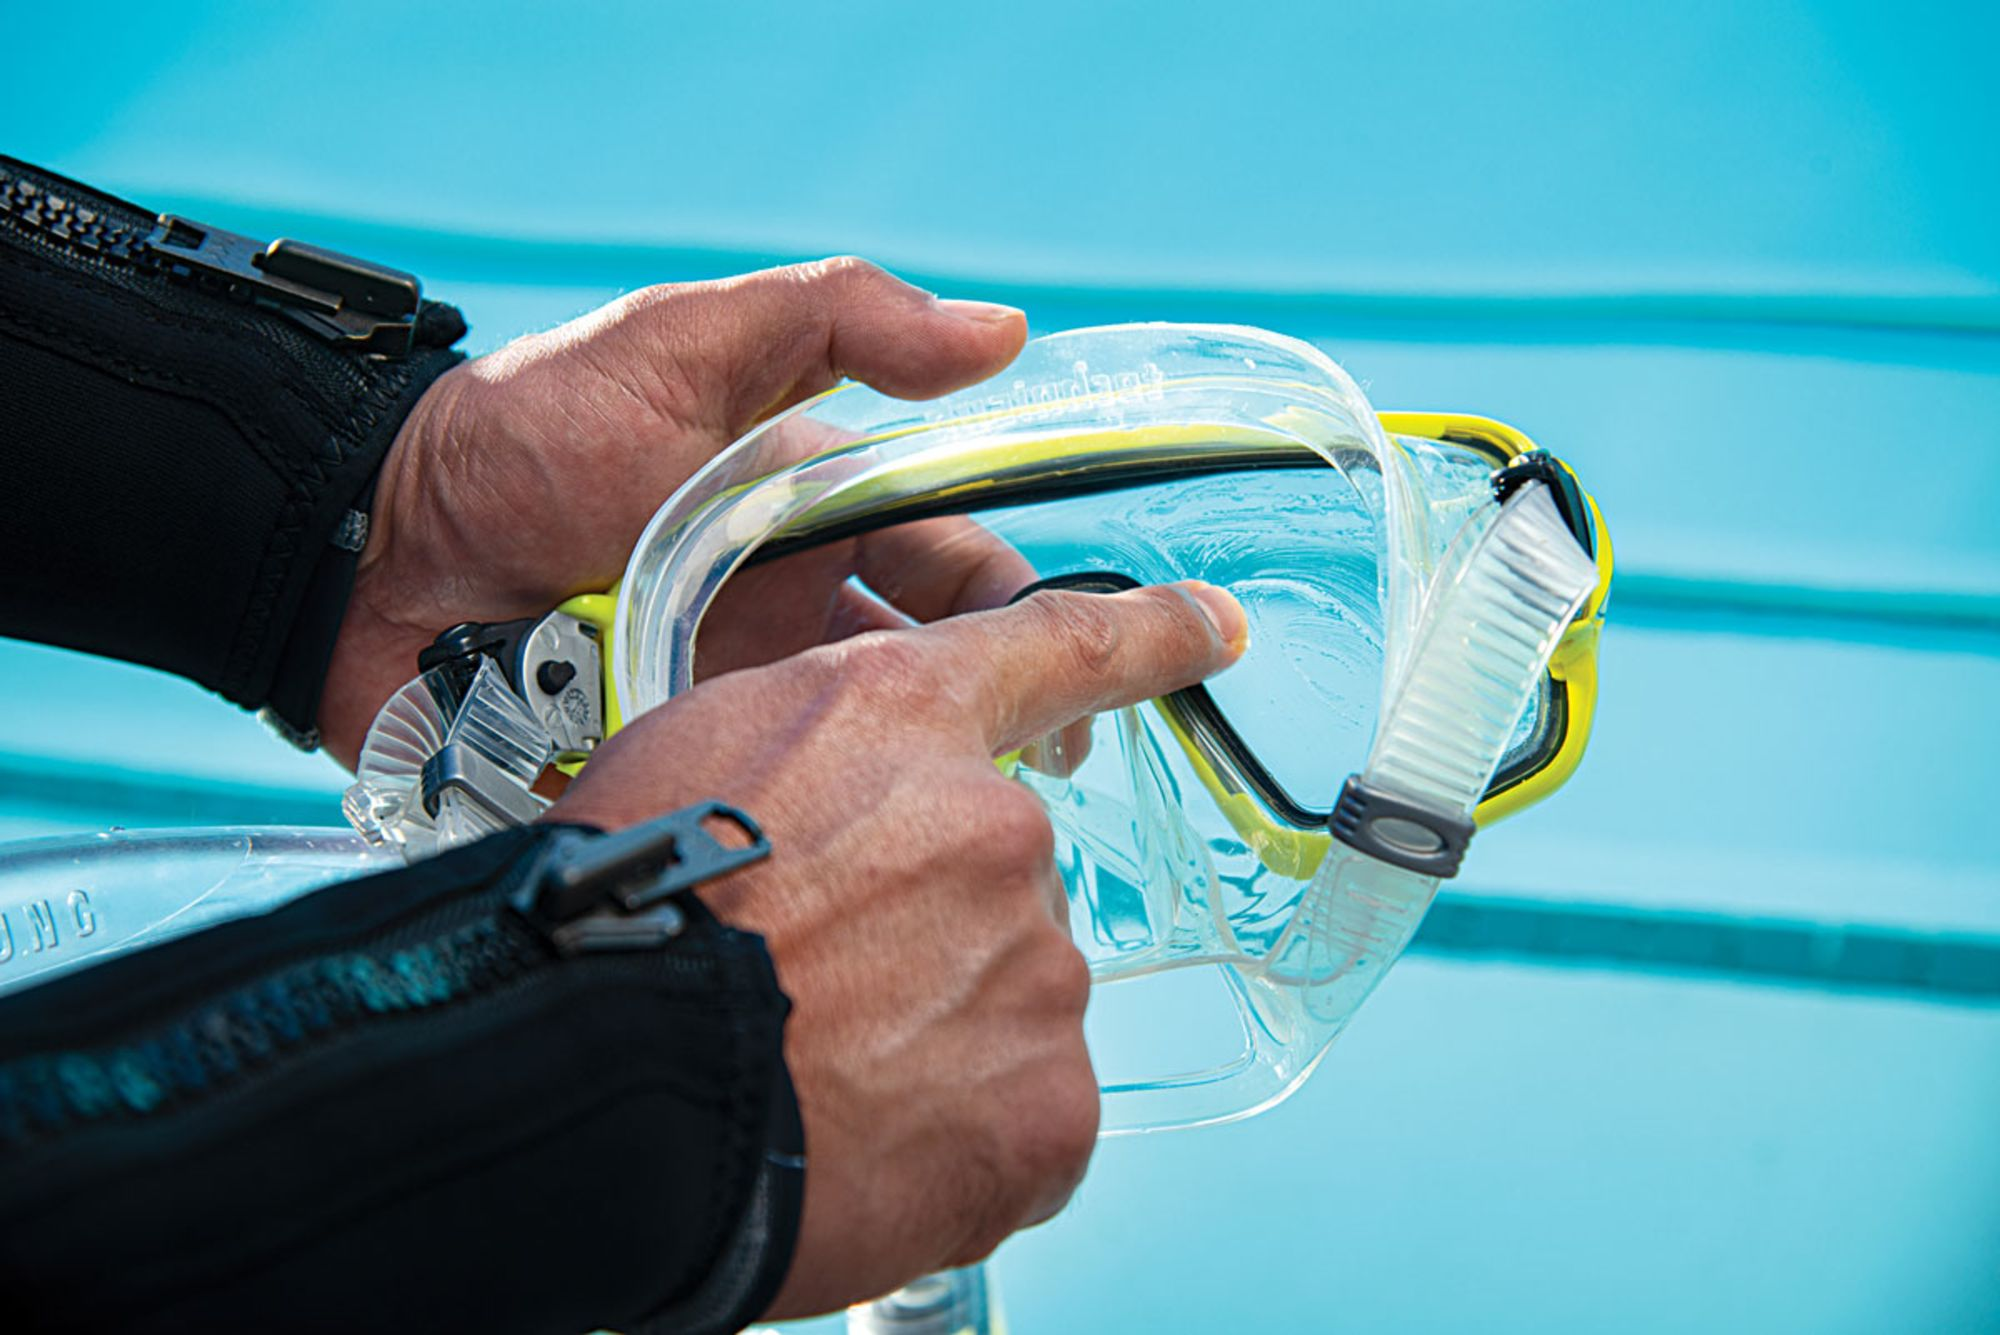 The Best Way to Clean Your New Dive Mask